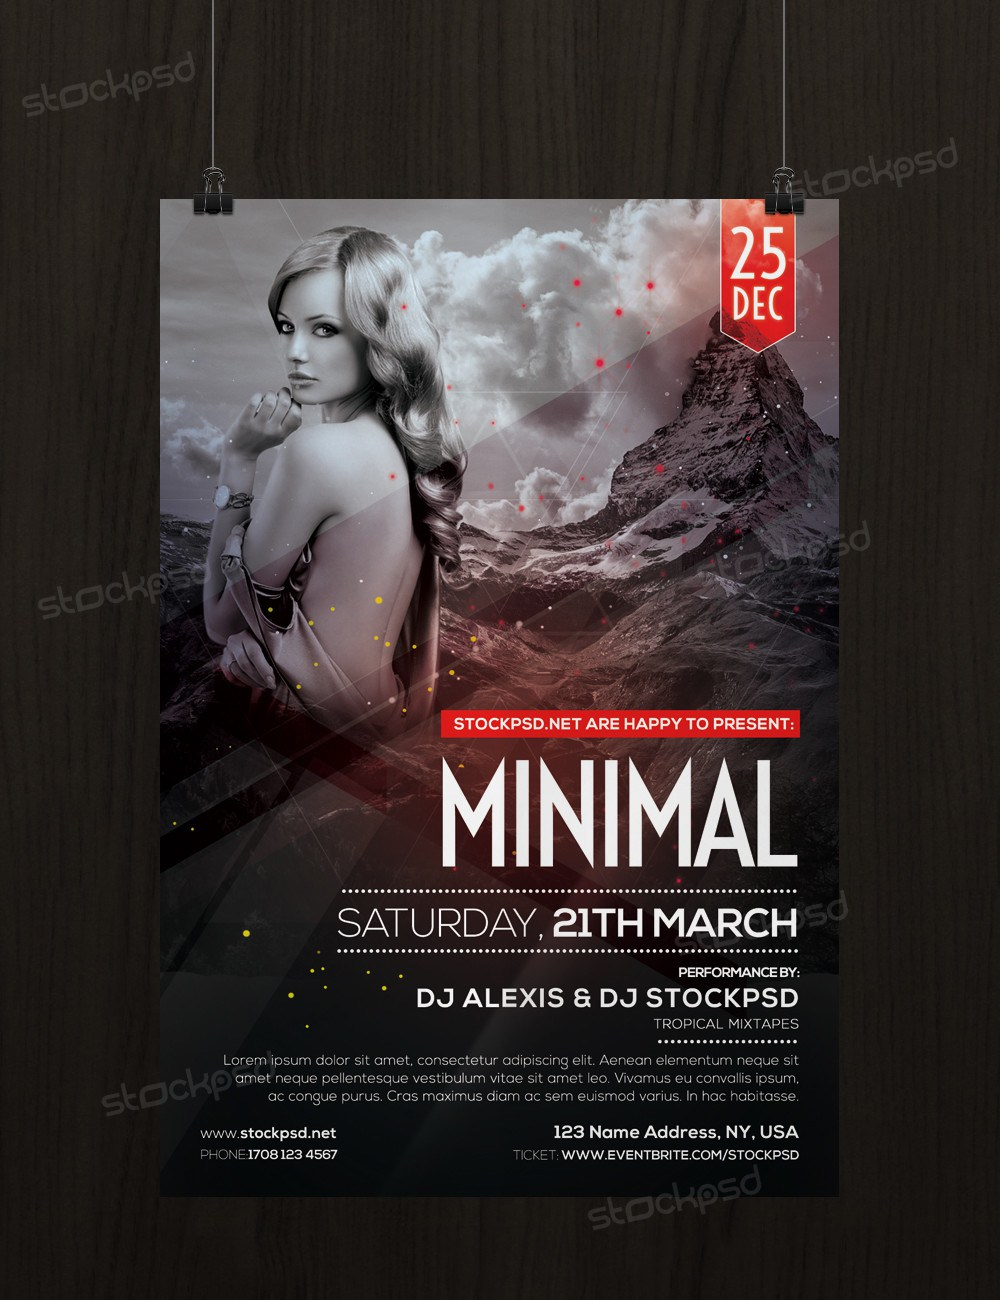 Minimal Download Free Psd Flyer Template Freebiedesign